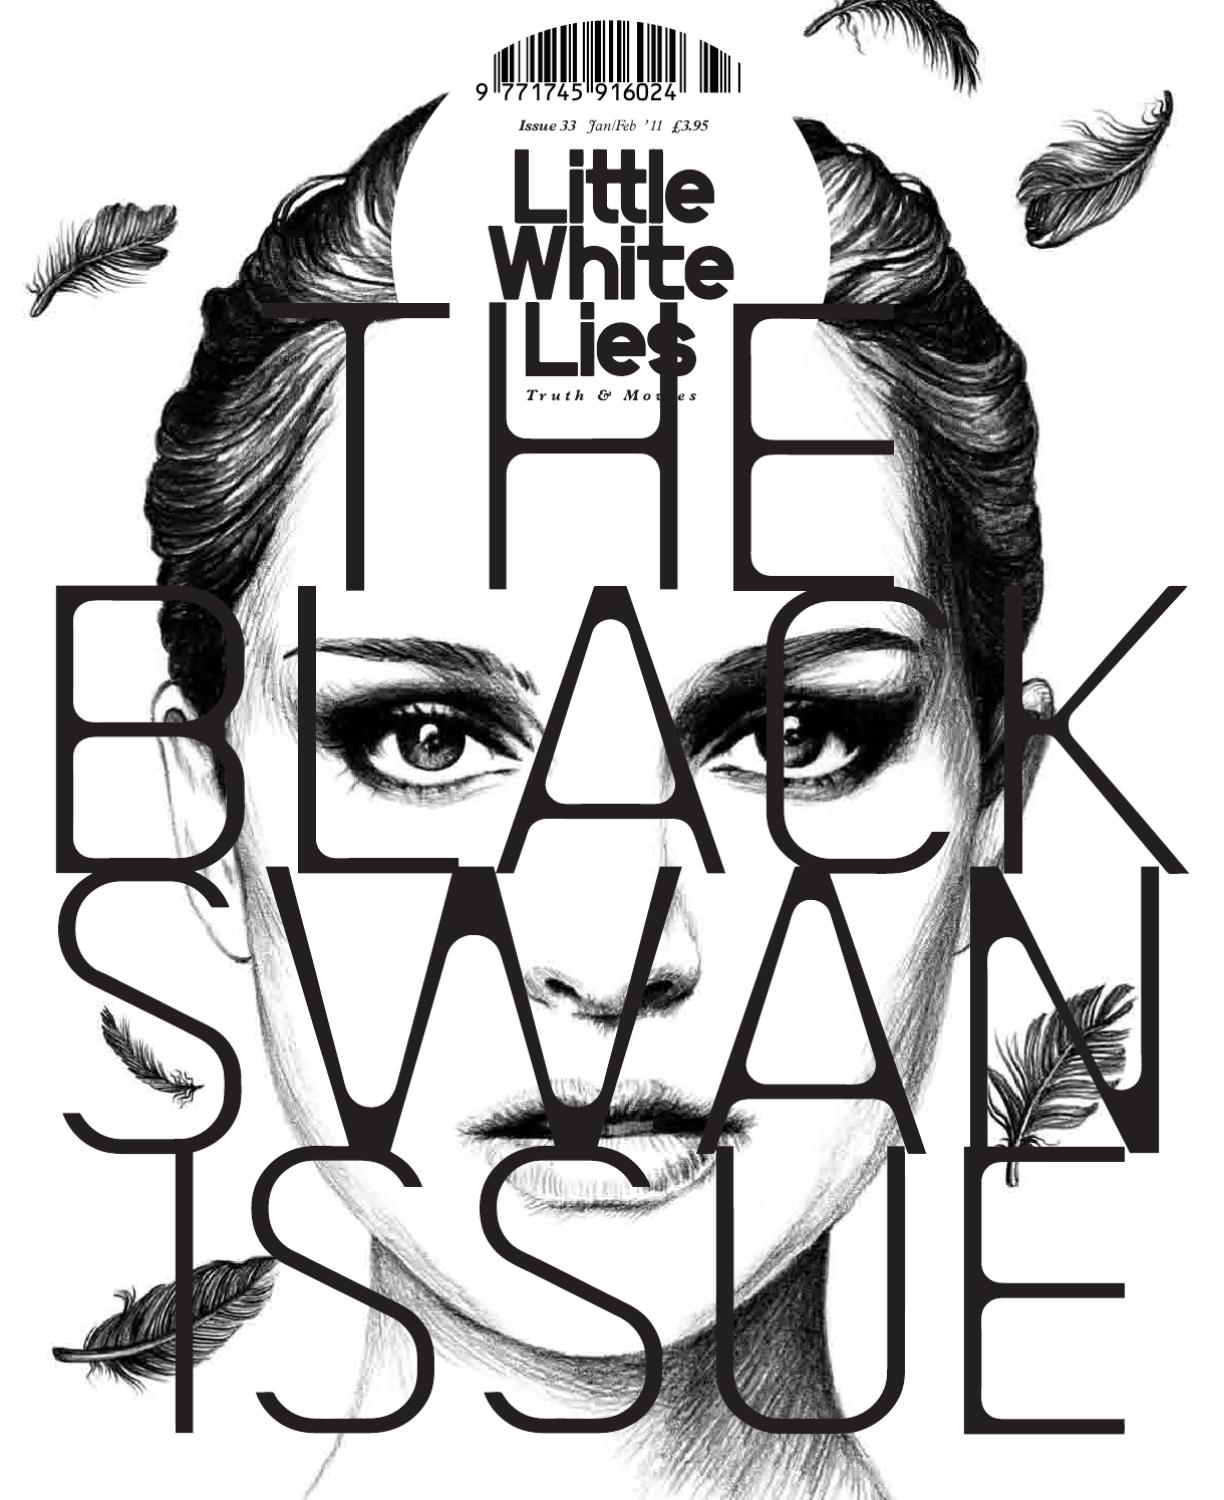 Little White Lies 33 The Black Swan Issue By Church Of London 3d Origami Love Boat Diagram Flickr Photo Sharing Issuu